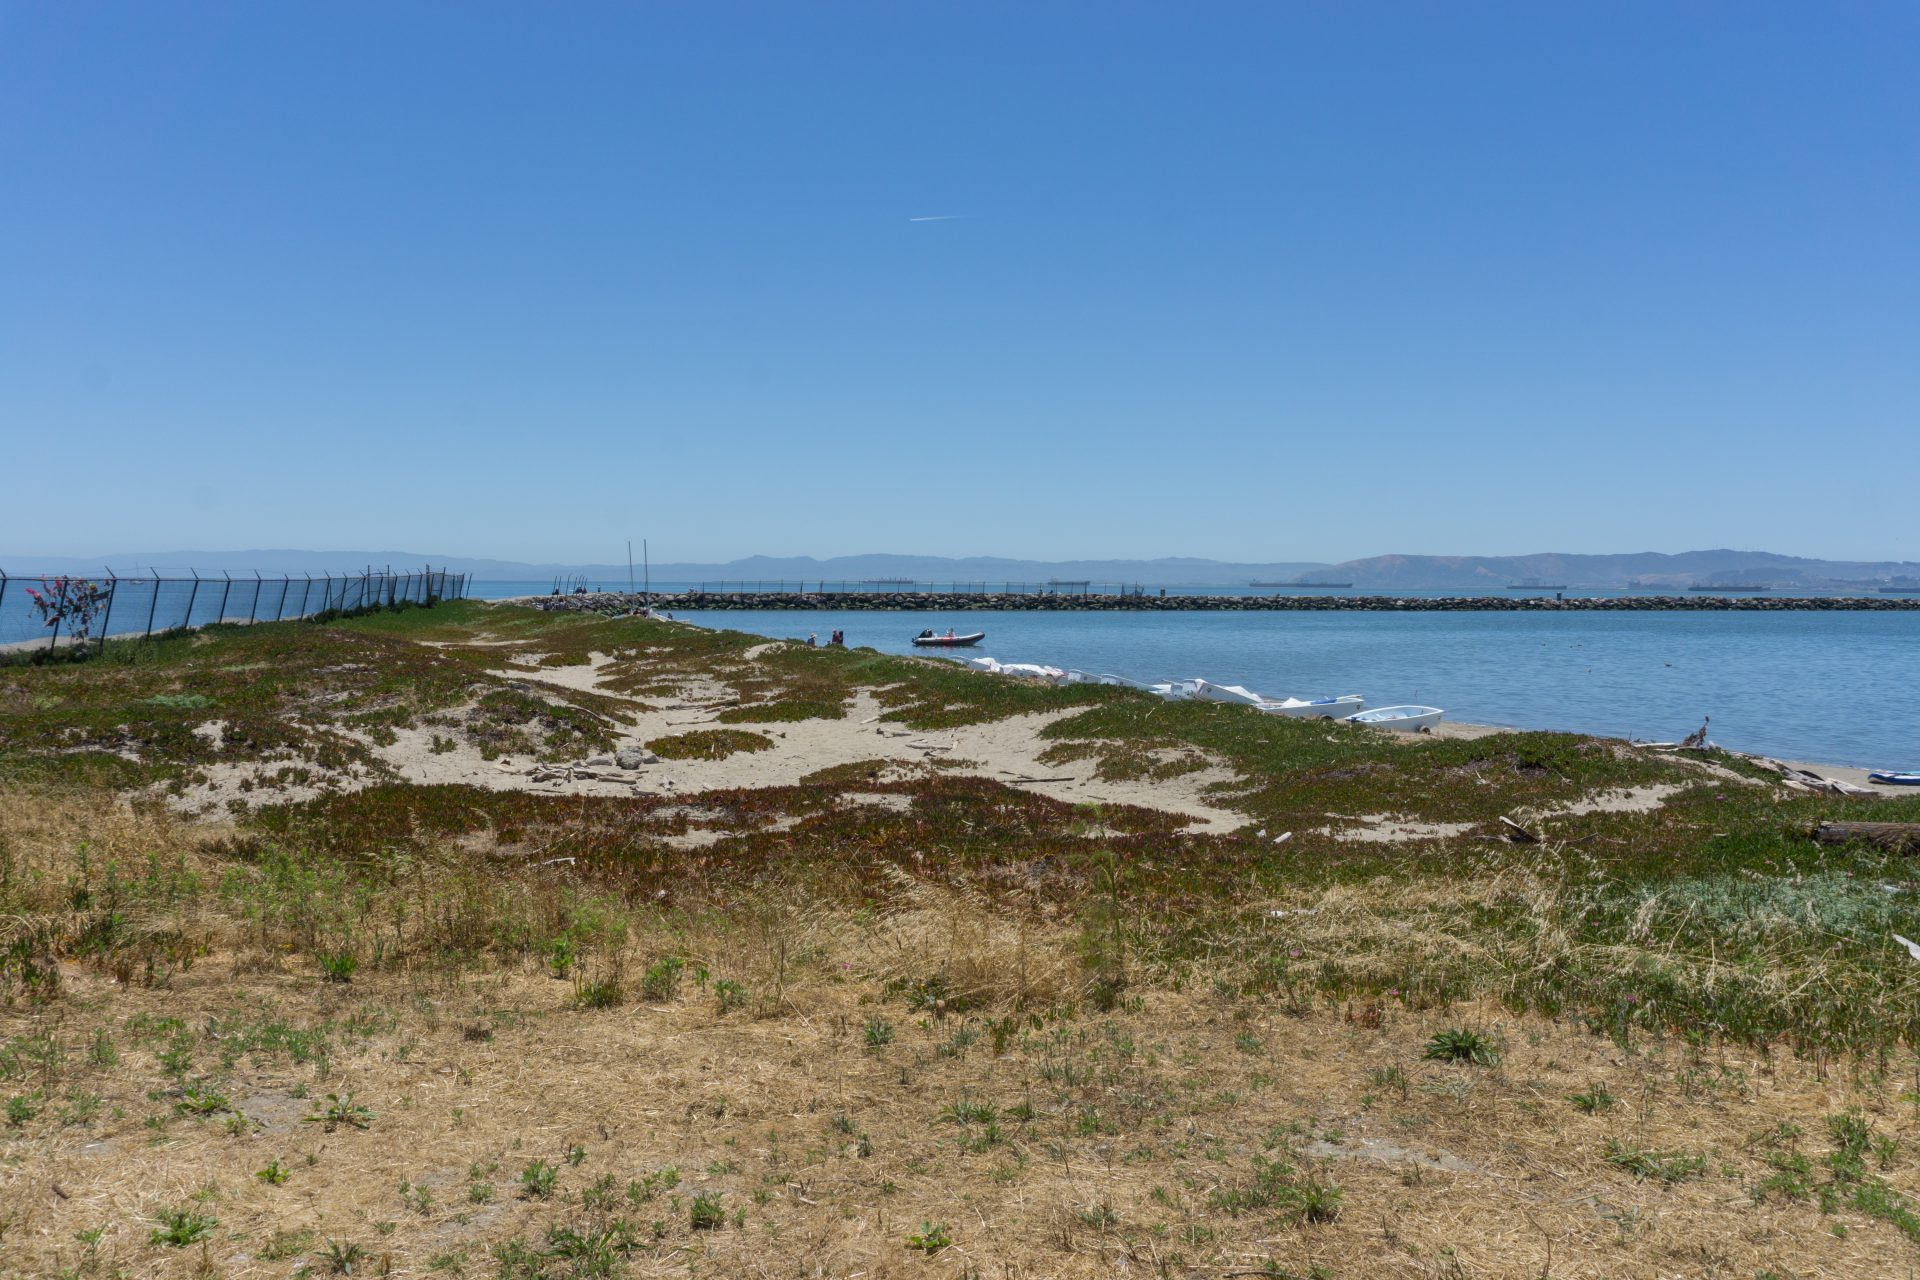 Sandy dunes covered in iceplant, beach on right withdingies pulled ashore